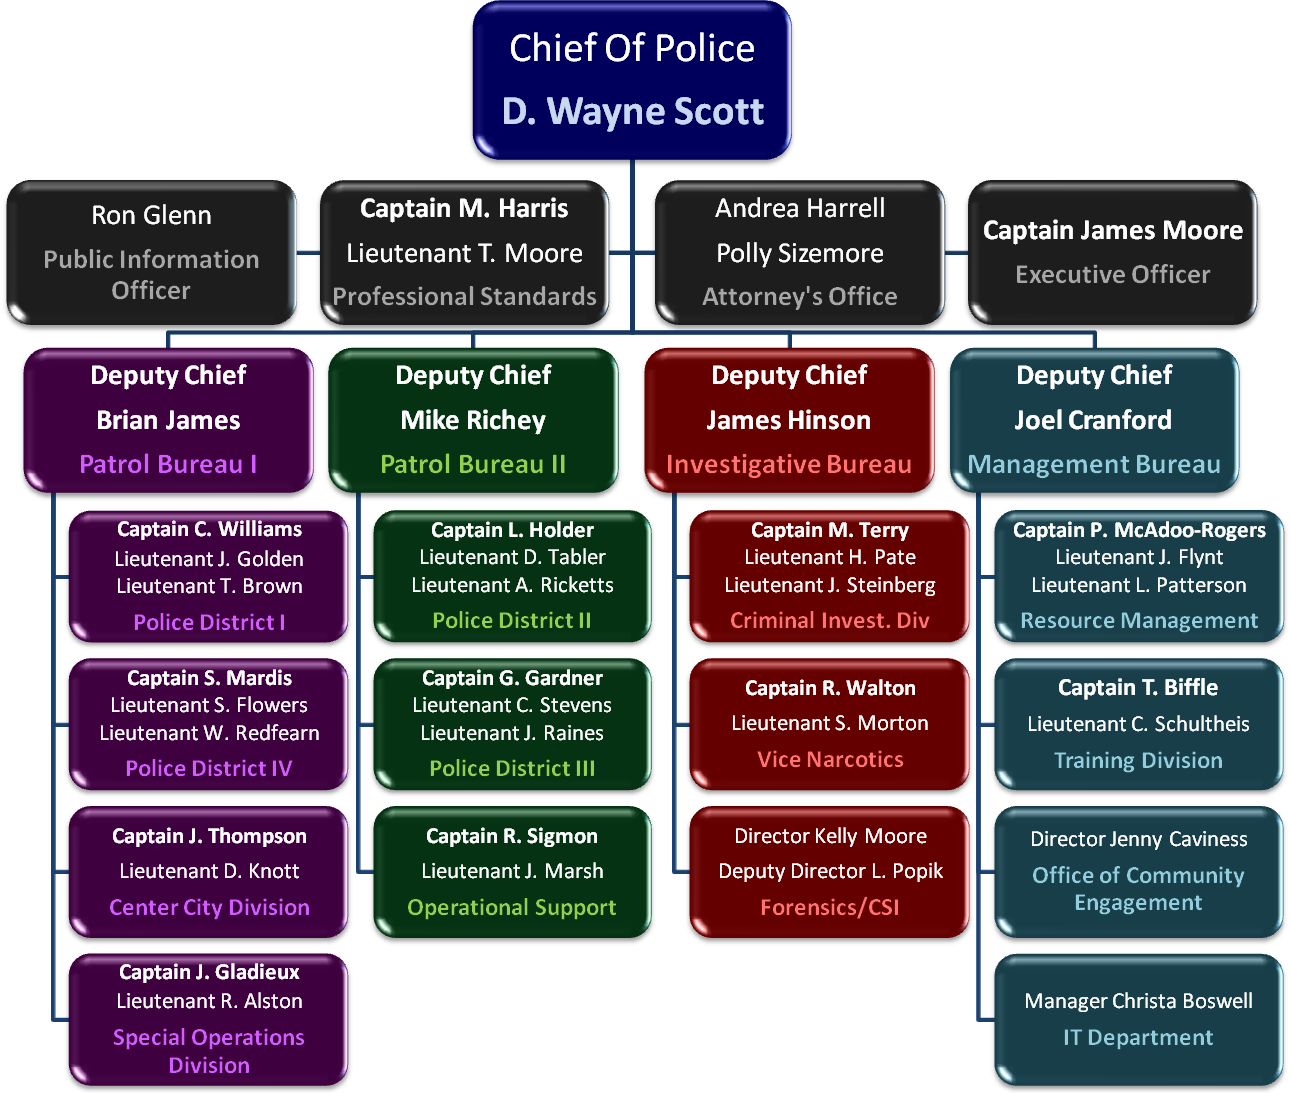 Changed Org Chart